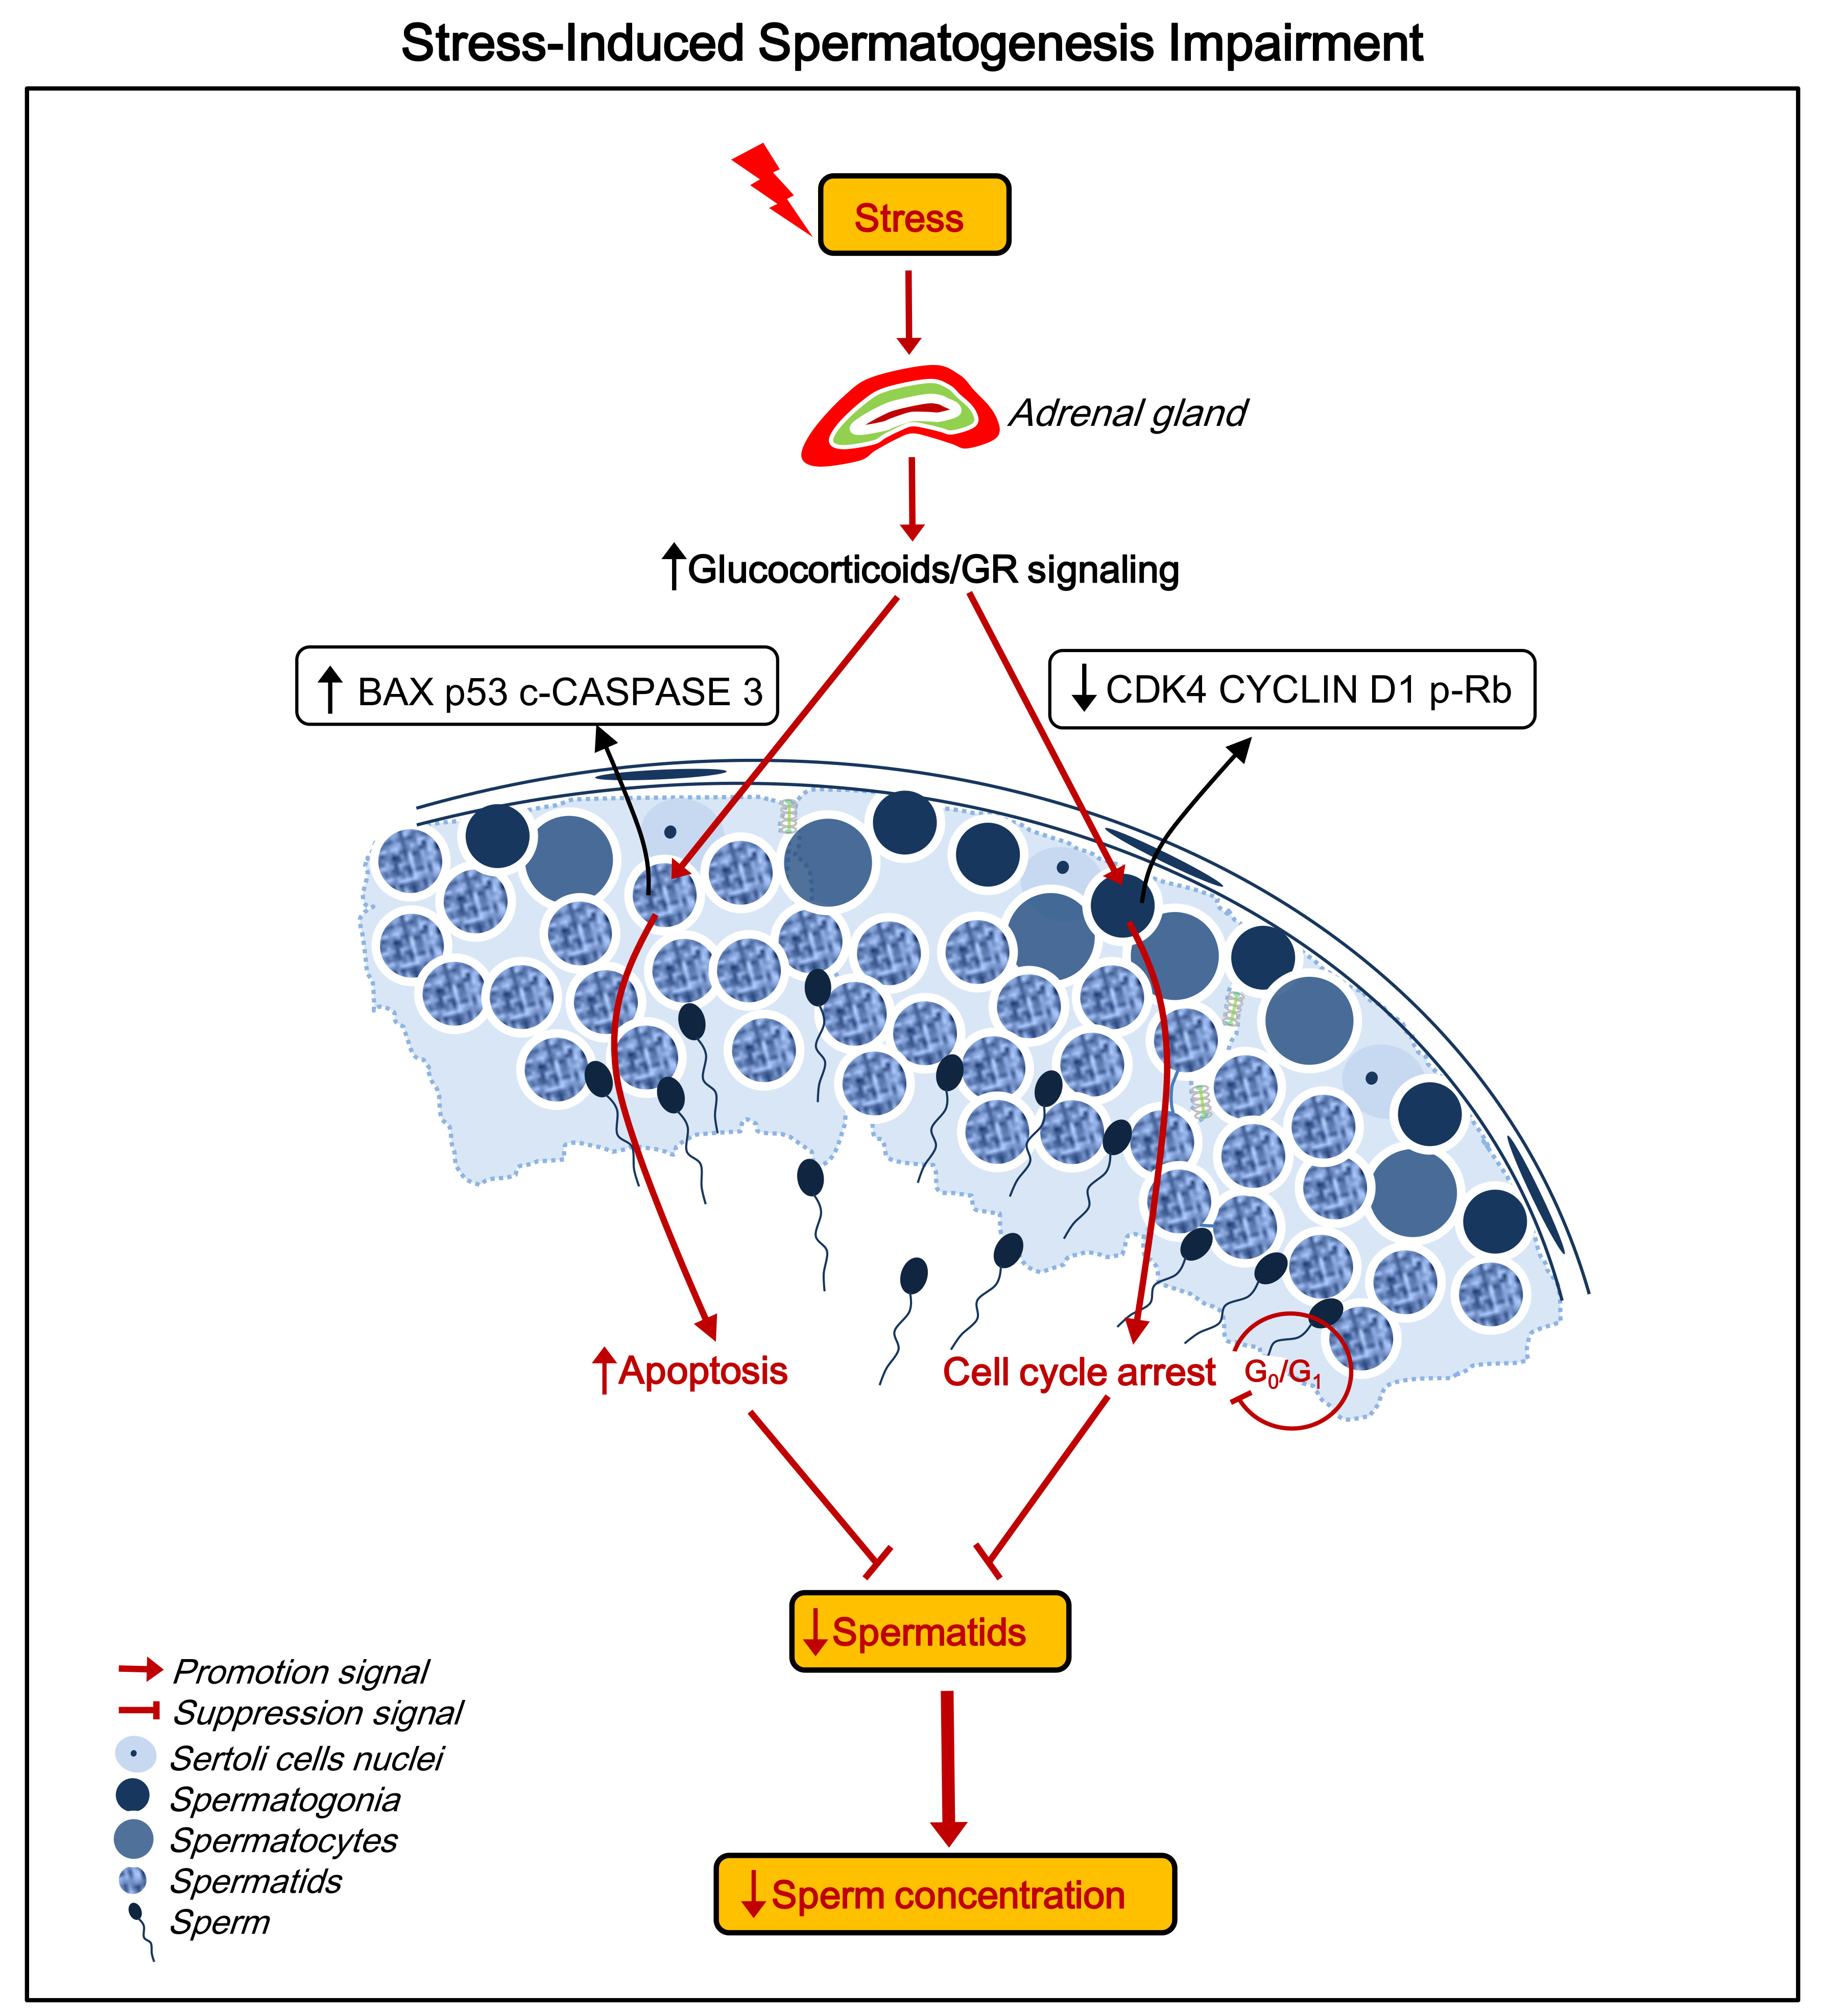 IJMS | Free Full-Text | Mechanisms of Stress-Induced